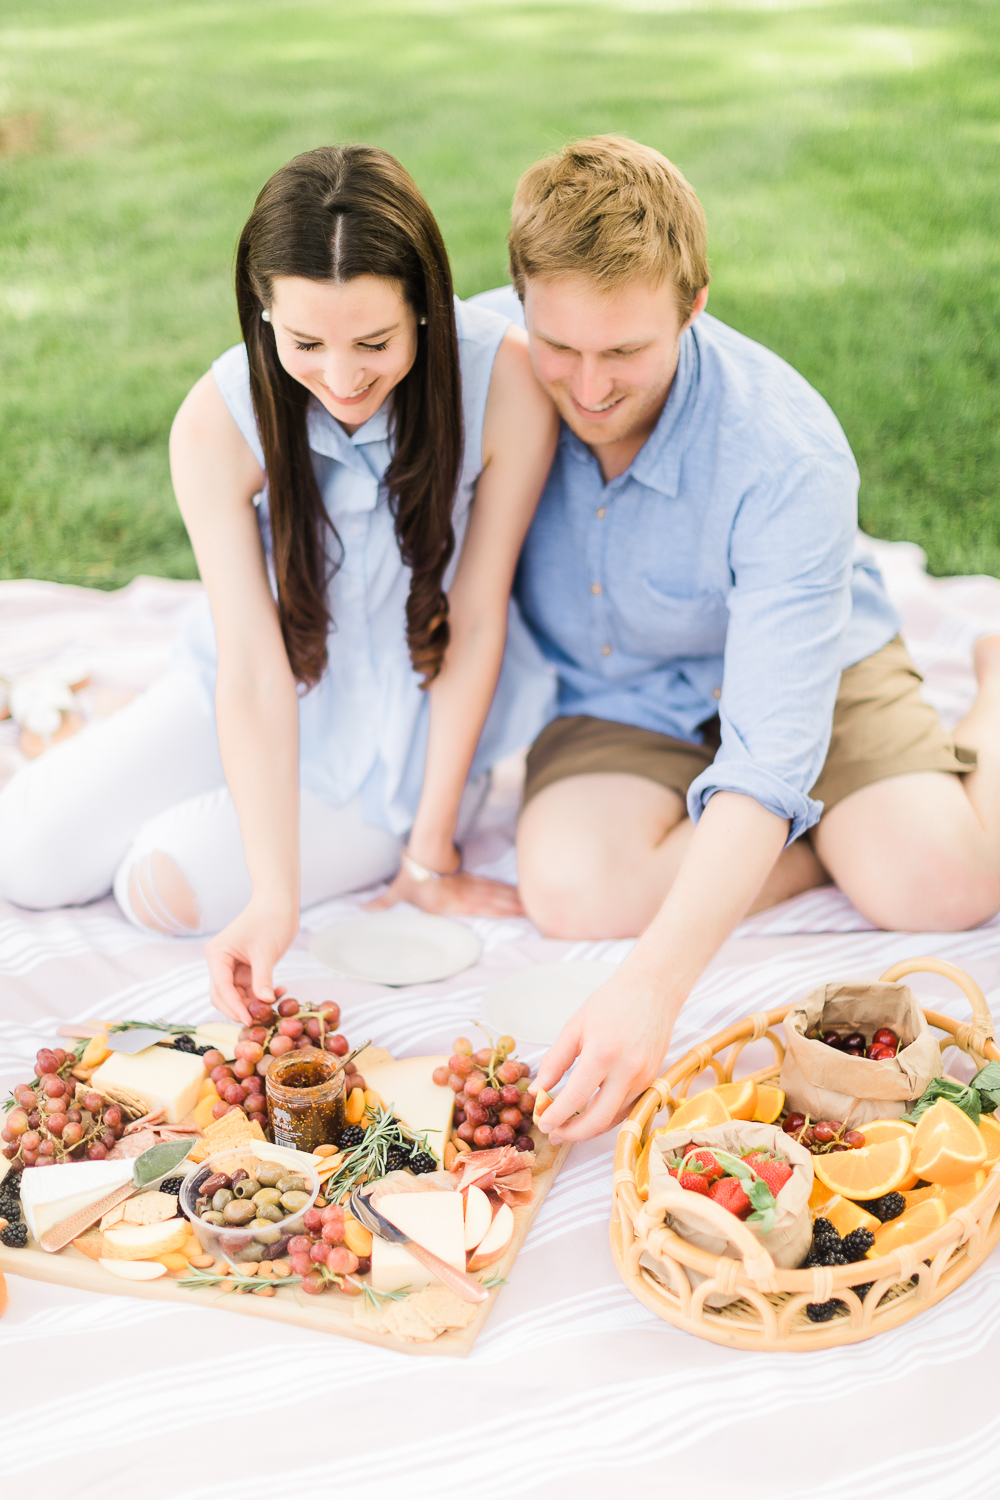 Date Night: How to Plan the Perfect Summer Picnic by Missouri blogger Stephanie Ziajka from Diary of a Debutante, romantic picnic ideas for him, the perfect picnic date, what to bring on a picnic date, what to take on a picnic date, cute picnic date ideas, how to plan a picnic date, AVA Grace wine review